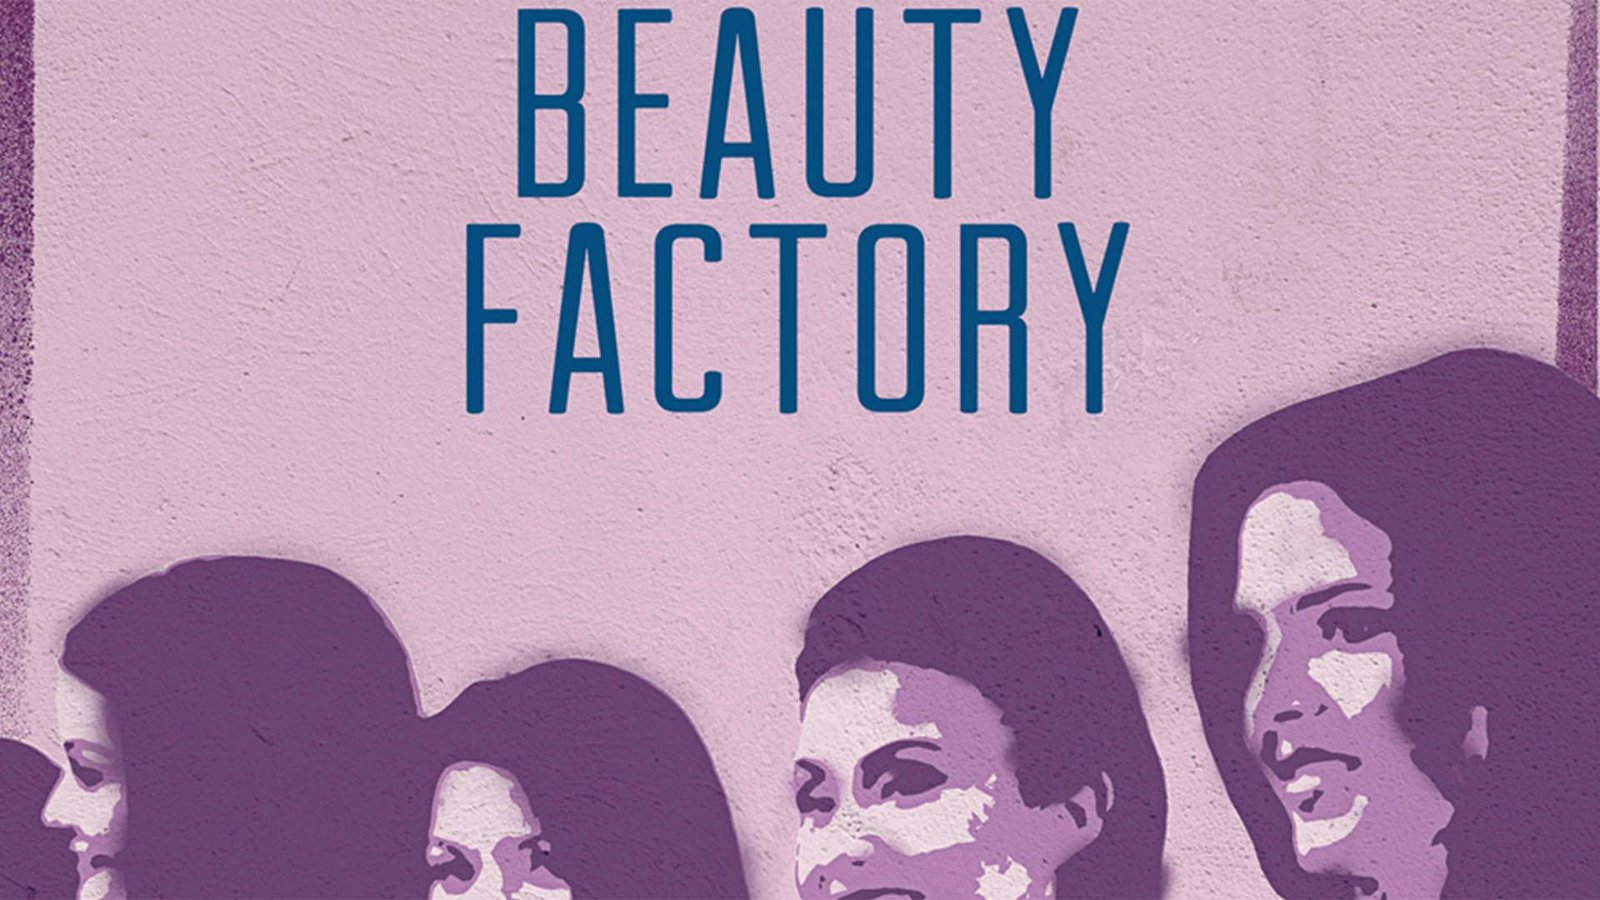 Beauty Factory - Competing for Miss Venezuela